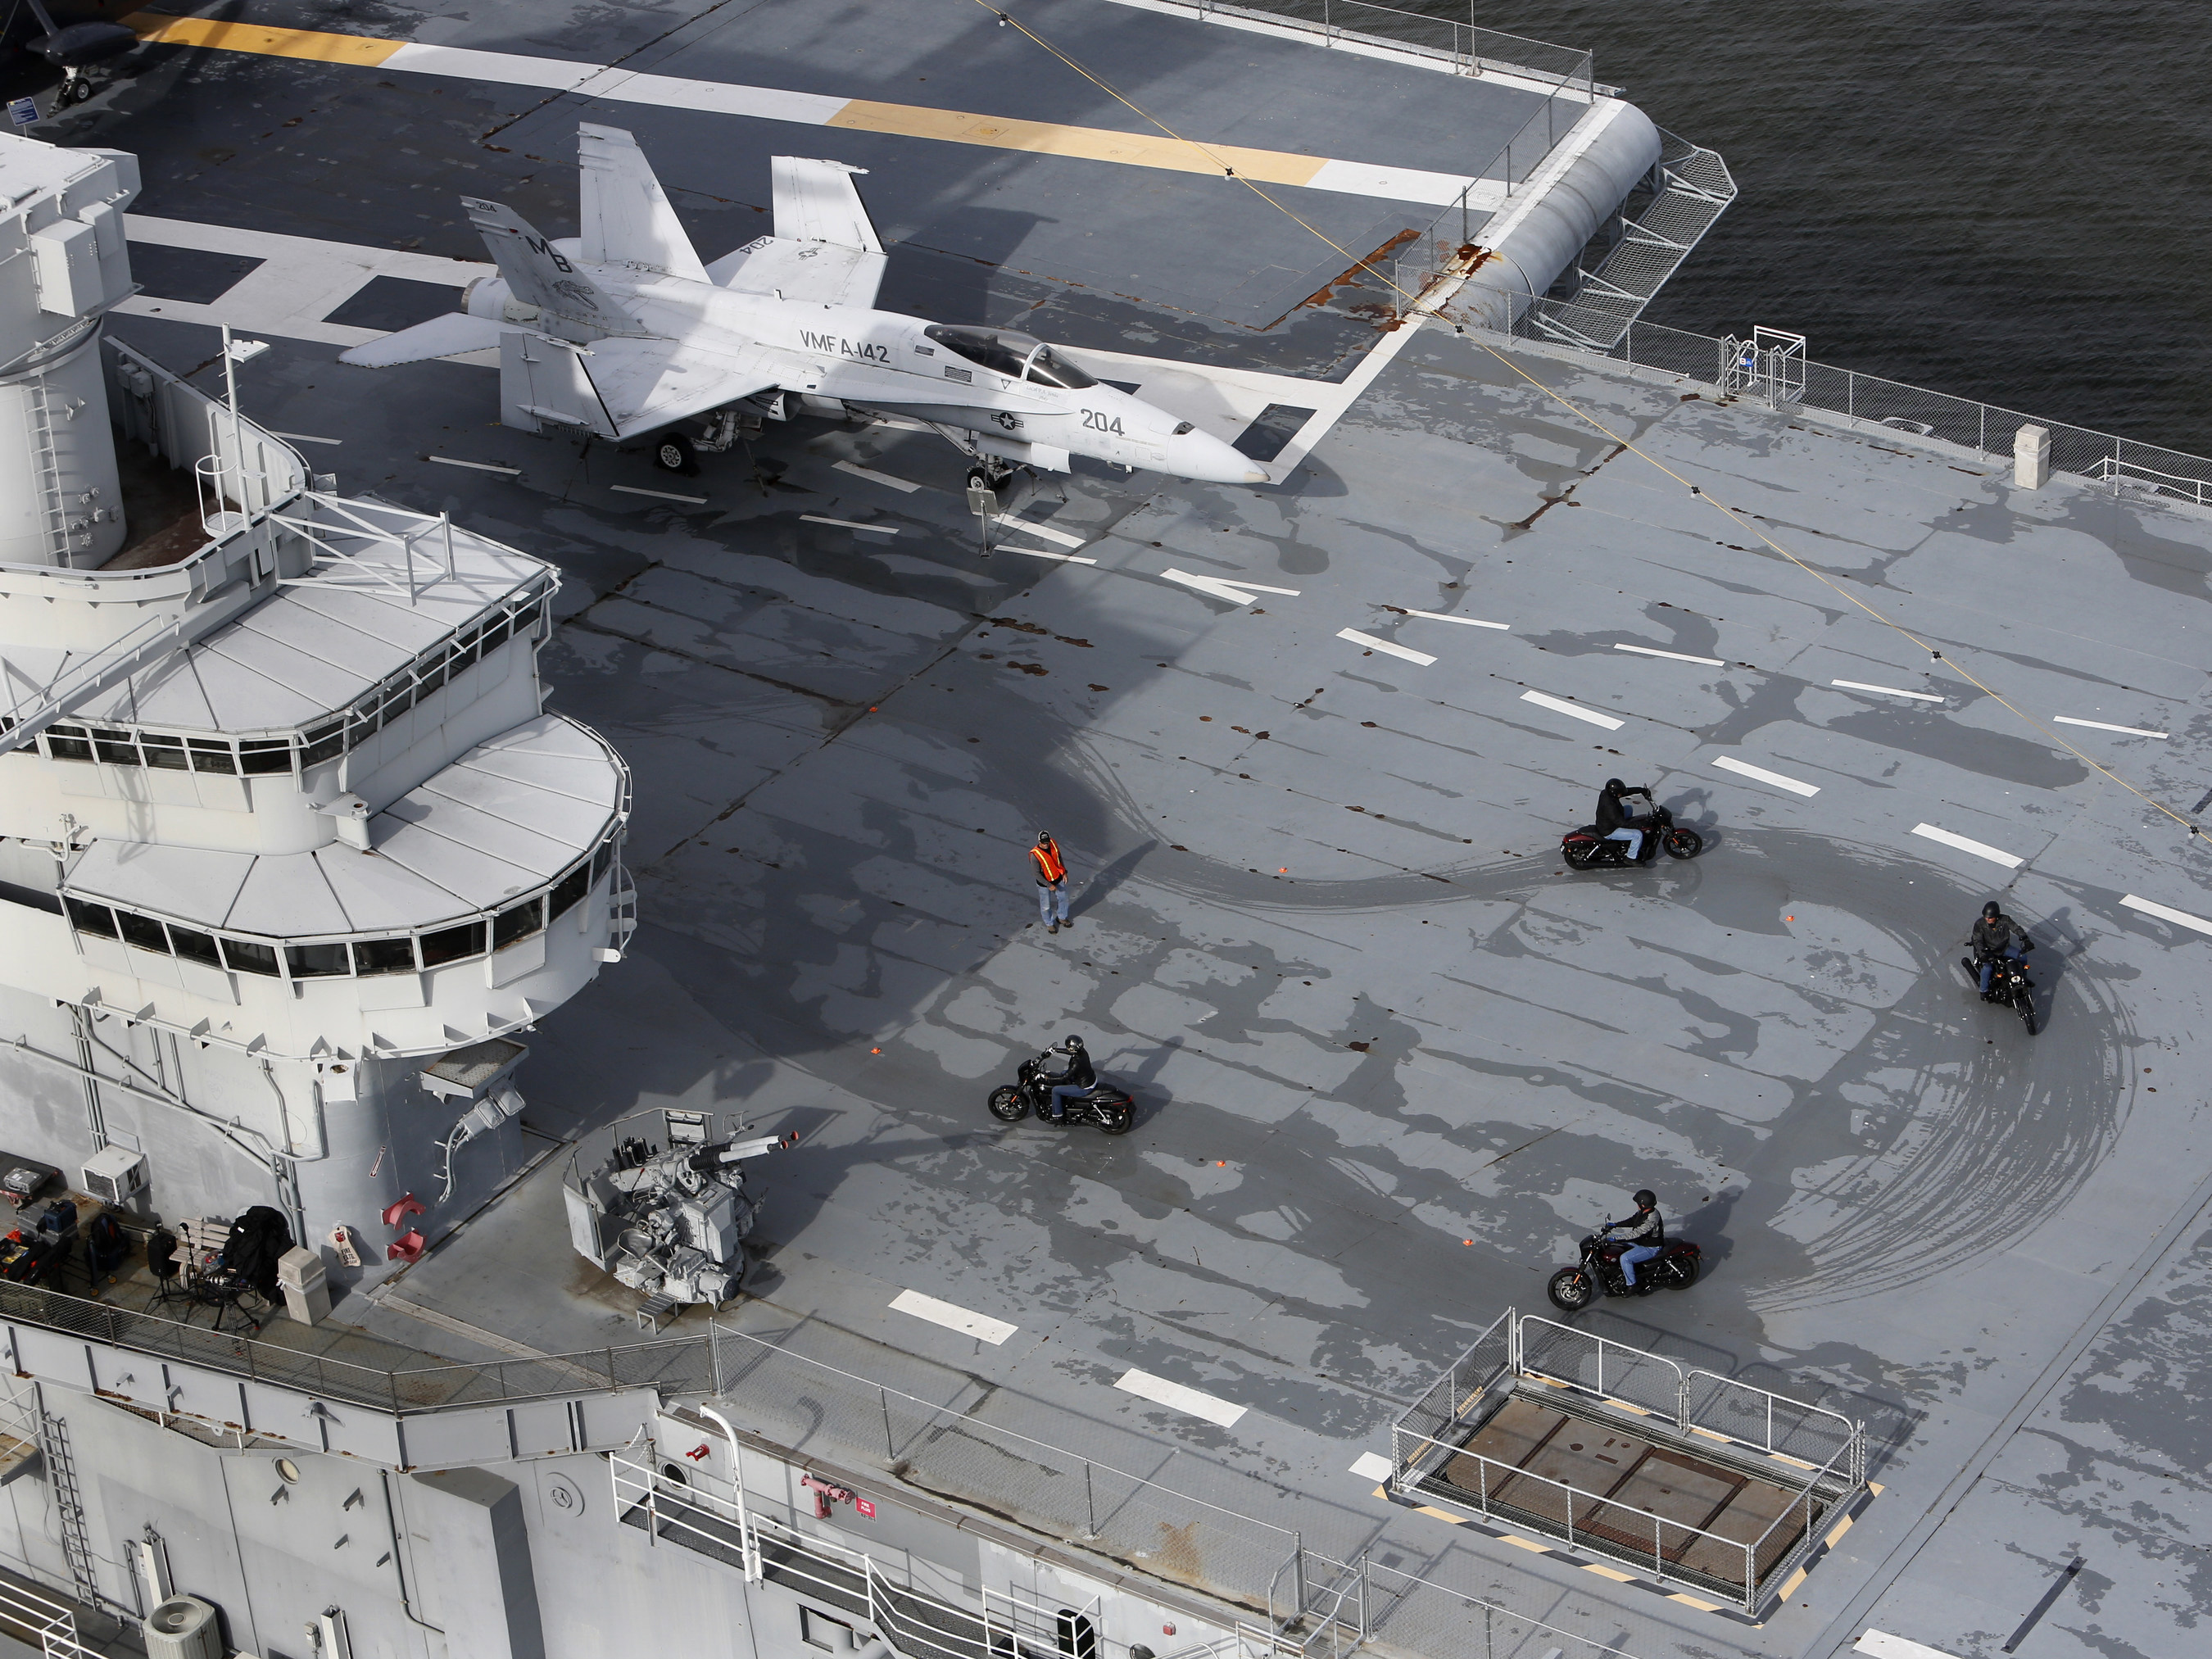 The scene from above the flight deck of the USS Yorktown -- six veterans and active-duty military ride the H-D Street 500 as Harley-Davidson announced it is offering current and former U.S. military free Riding Academy motorcycle training in Mt. Pleasant, S.C., Thursday, May 7, 2015. (Mic Smith/AP Images for Harley-Davidson)